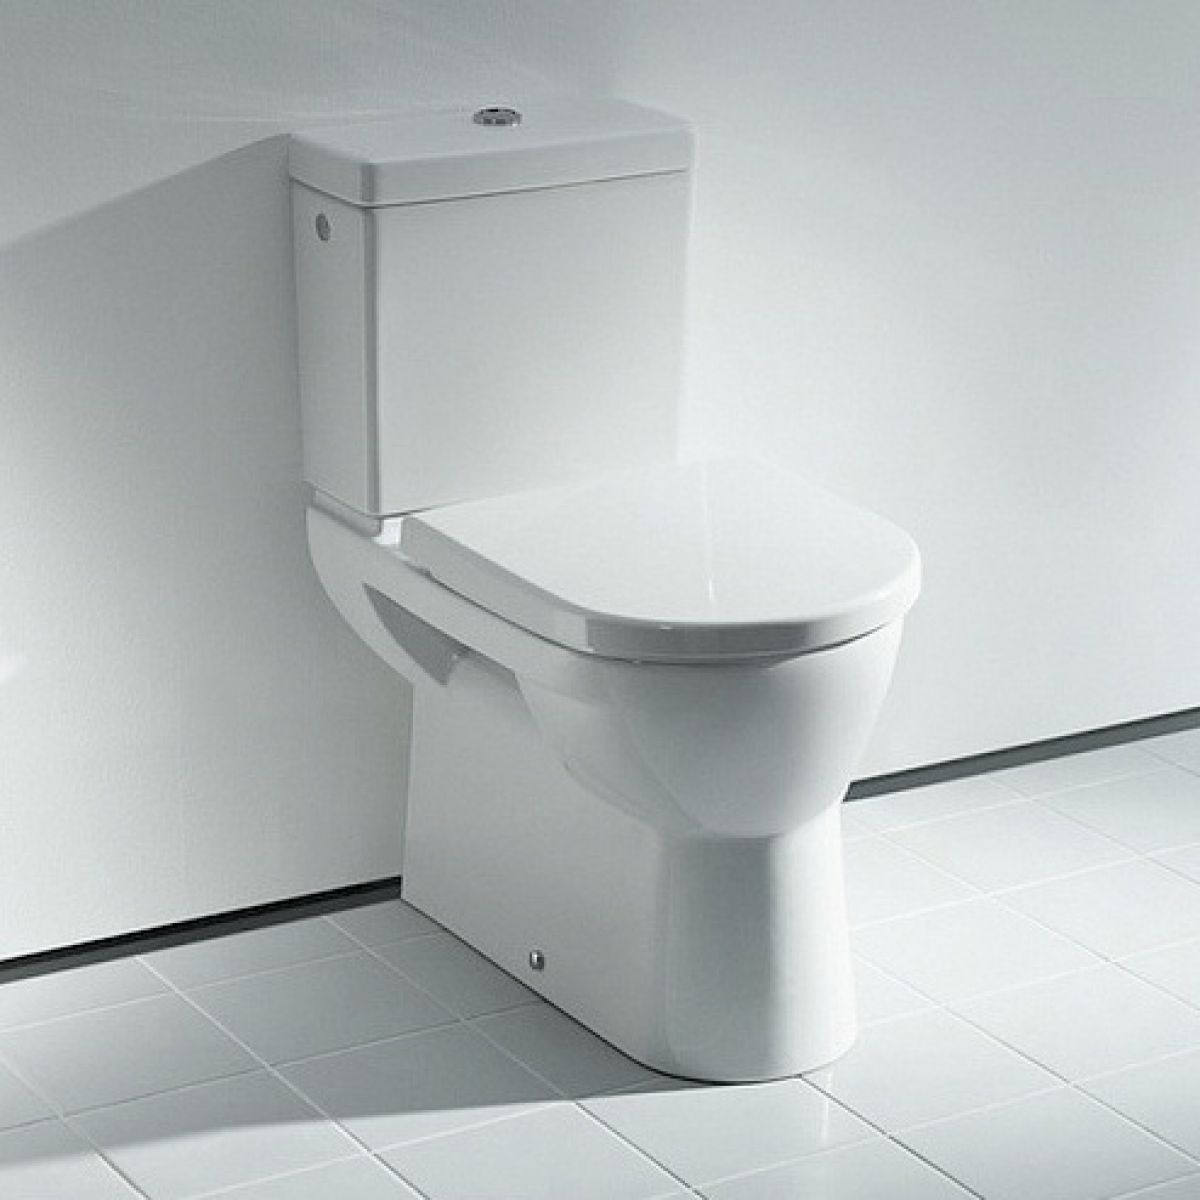 laufen pro close coupled wc suite back to wall uk. Black Bedroom Furniture Sets. Home Design Ideas